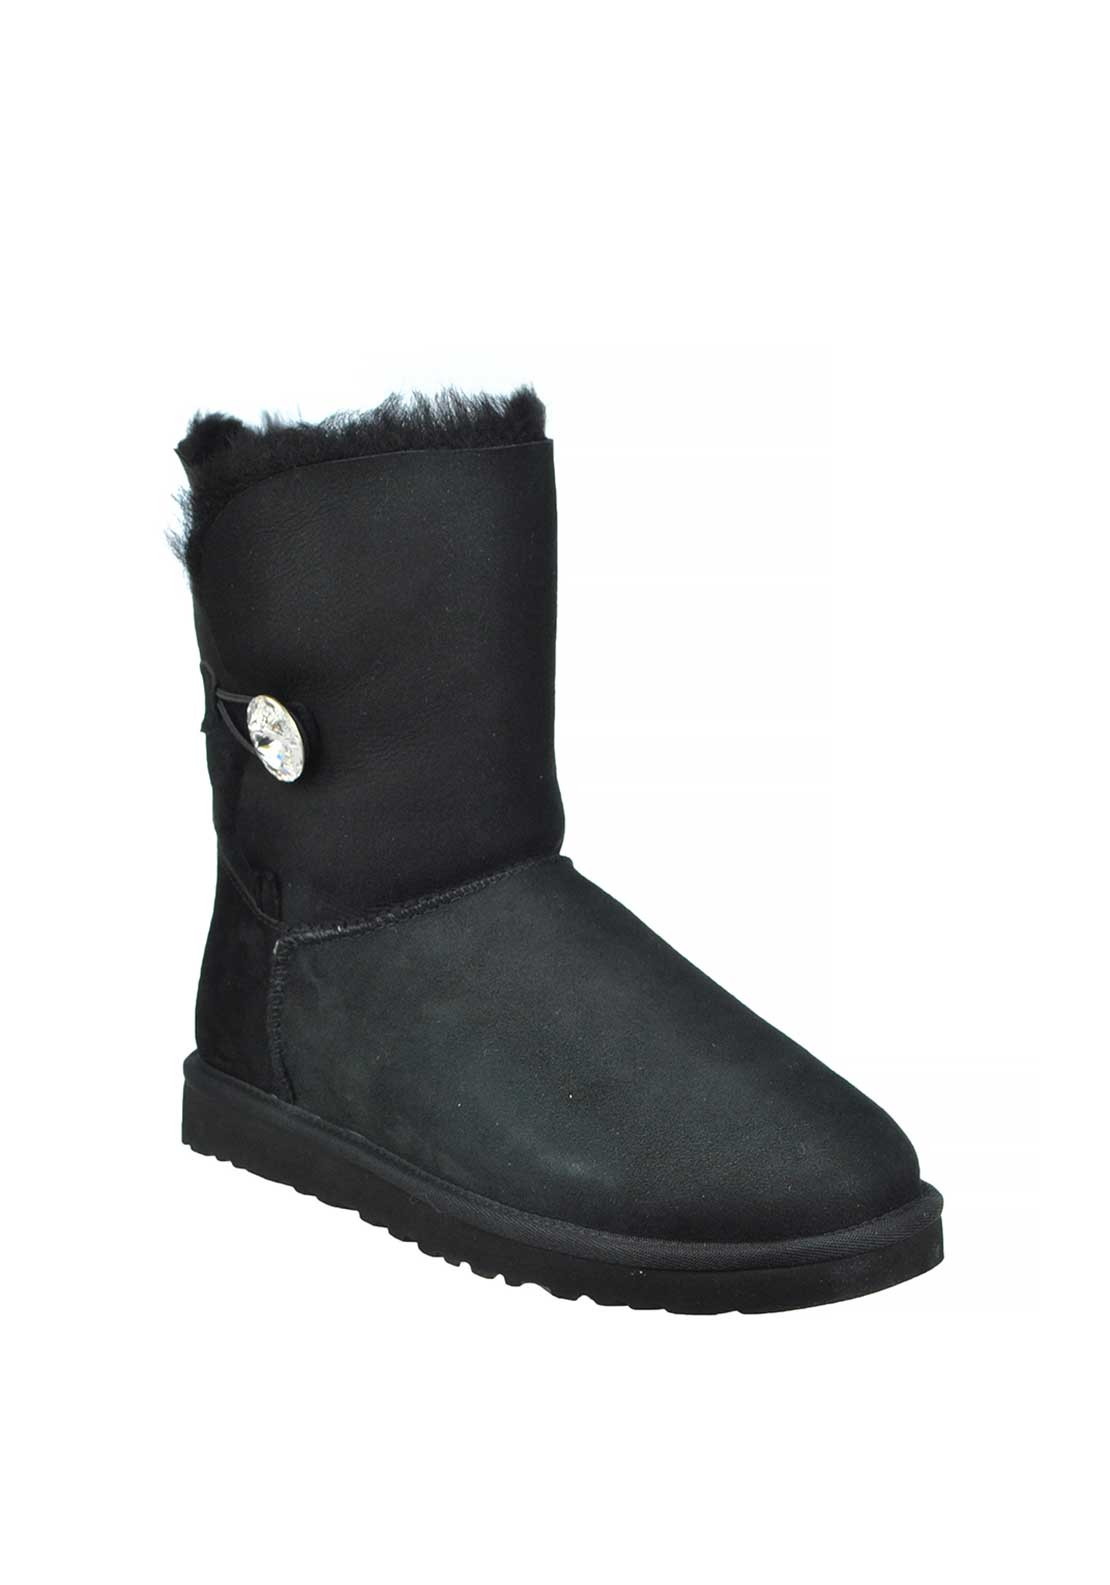 UGG Australia Womens Suede Bailey Bling Boots, Black